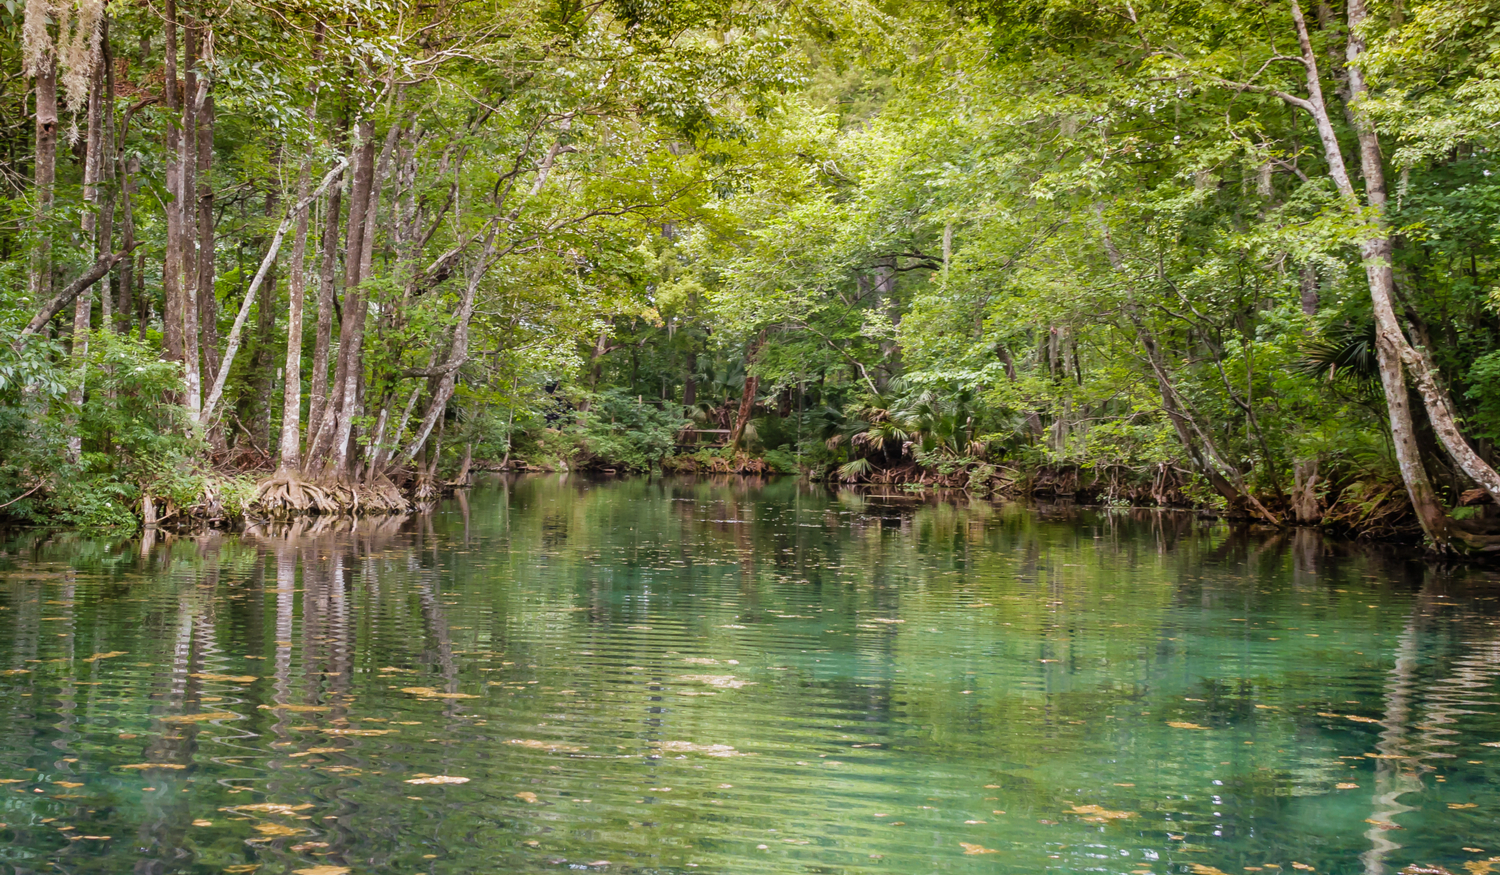 Photo of a beautiful Florida river and riverbank in a natural setting